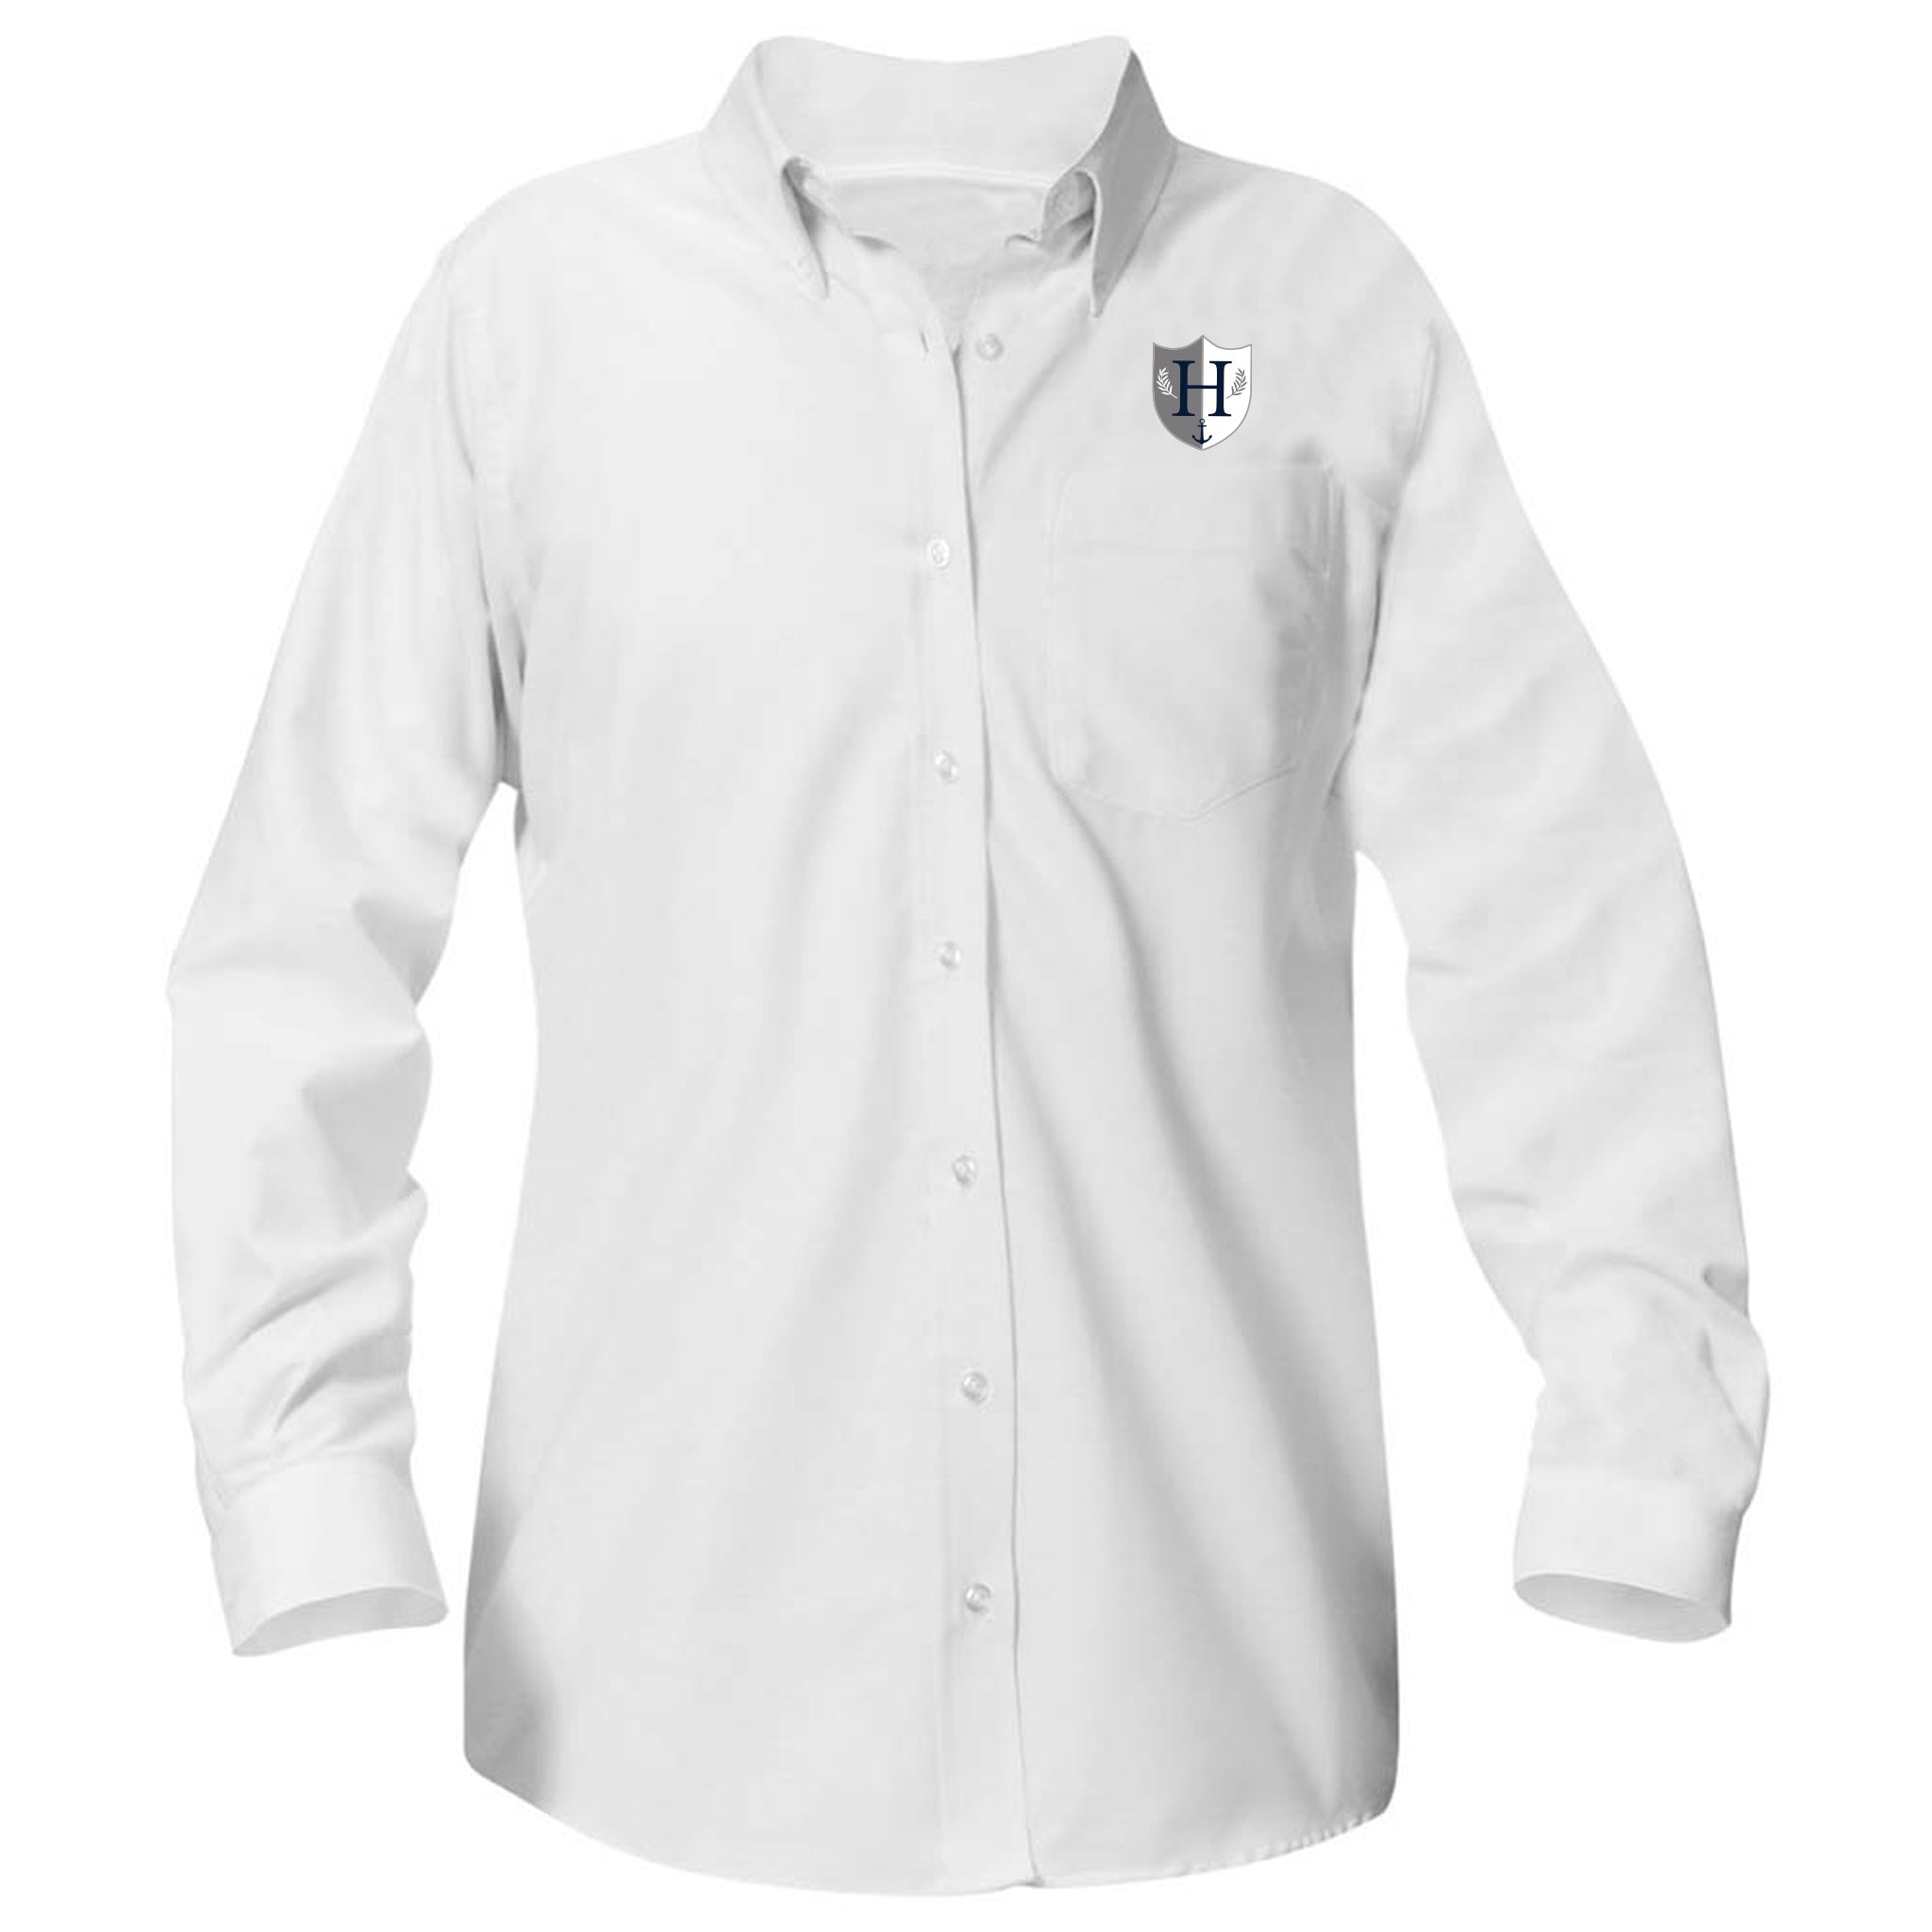 Capital Prep Harbor Long Sleeve Girls Oxford (Grades 6-12)